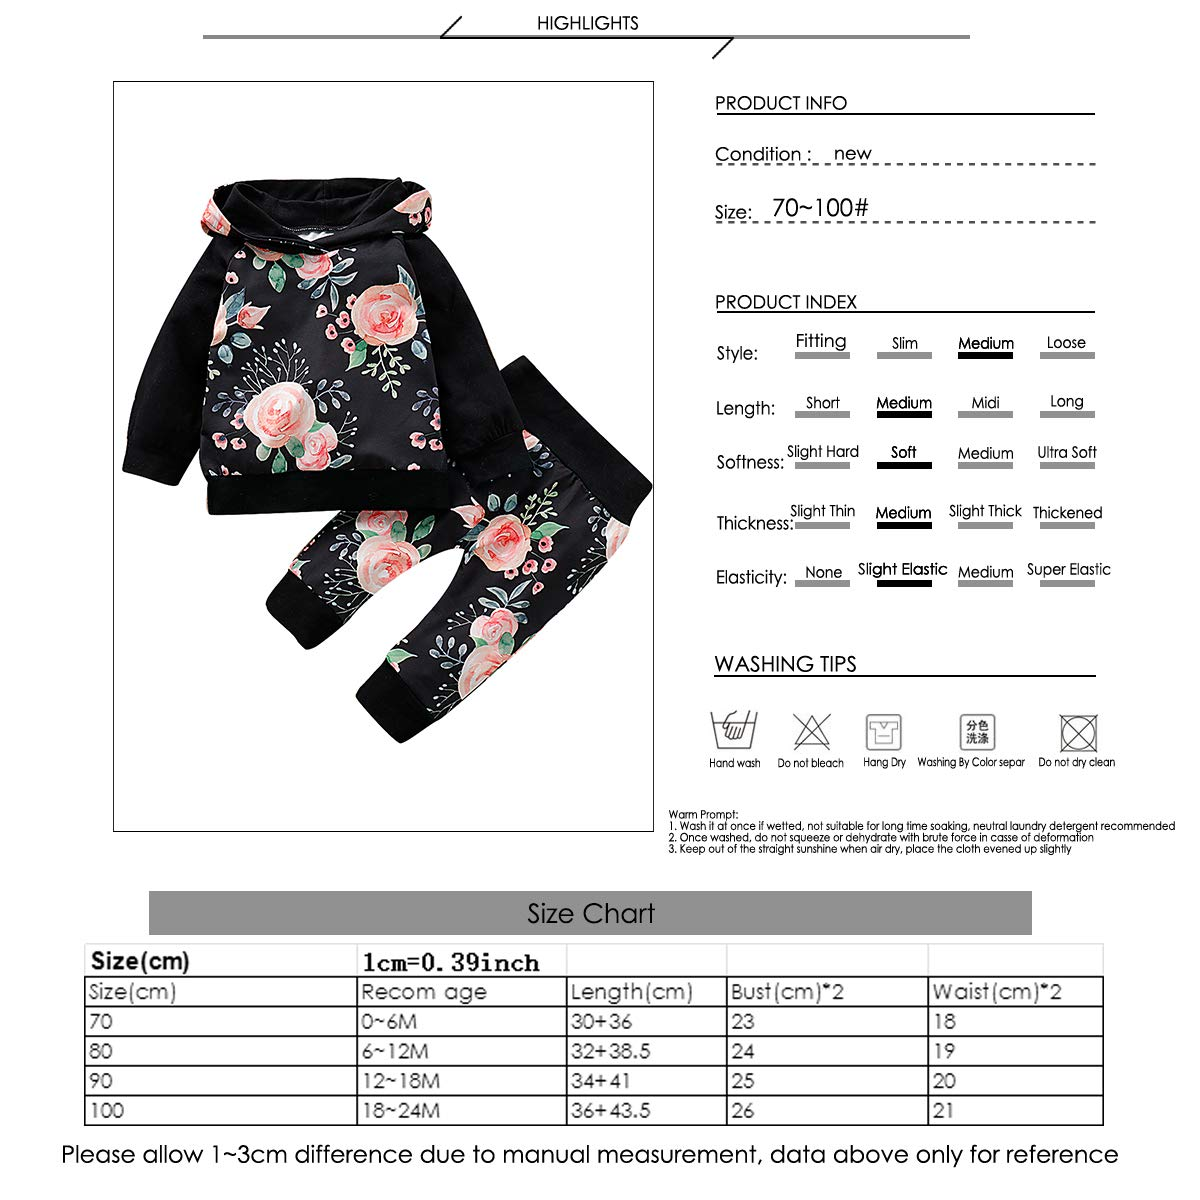 Borlai Hoodie for Baby Boys Girls Floral Hooded Top and Pants for Newborn Baby Toddler 2PCS Long Sleeve Fashion Outfit Clothes Set 0-24M